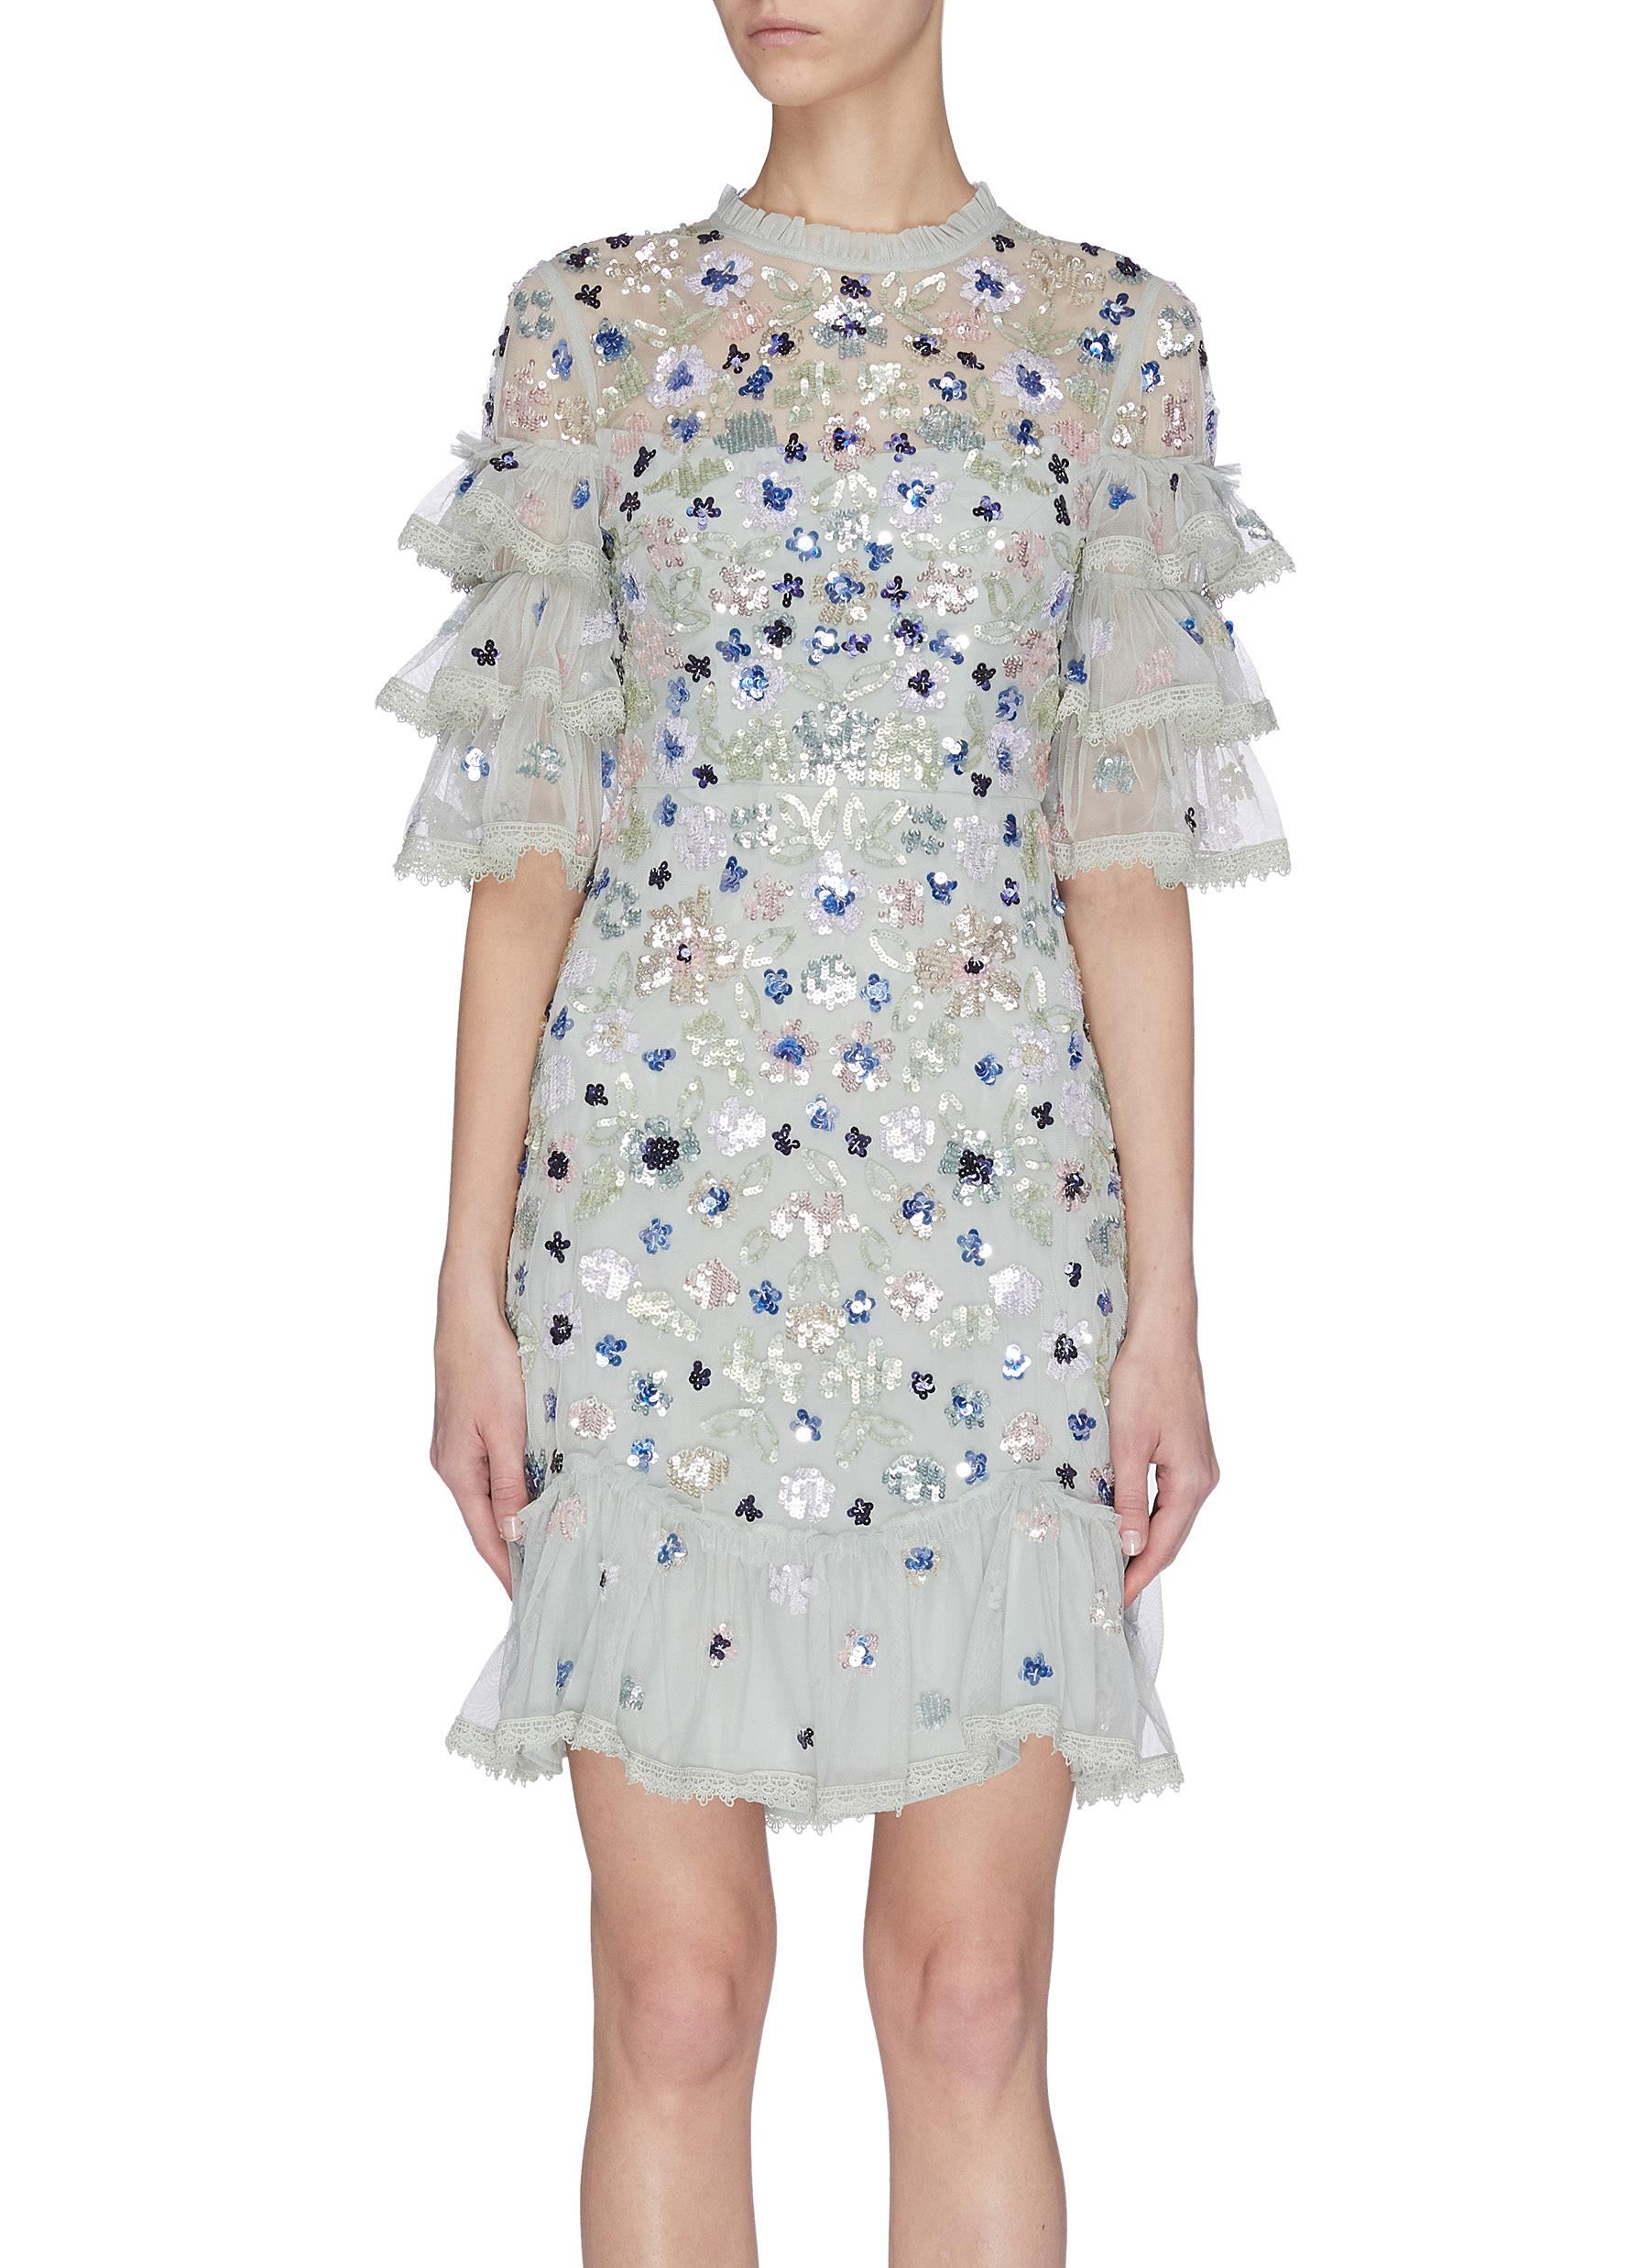 Buy Needle & Thread Dresses 'Meadow' sequin embroidered ruffle mini dress